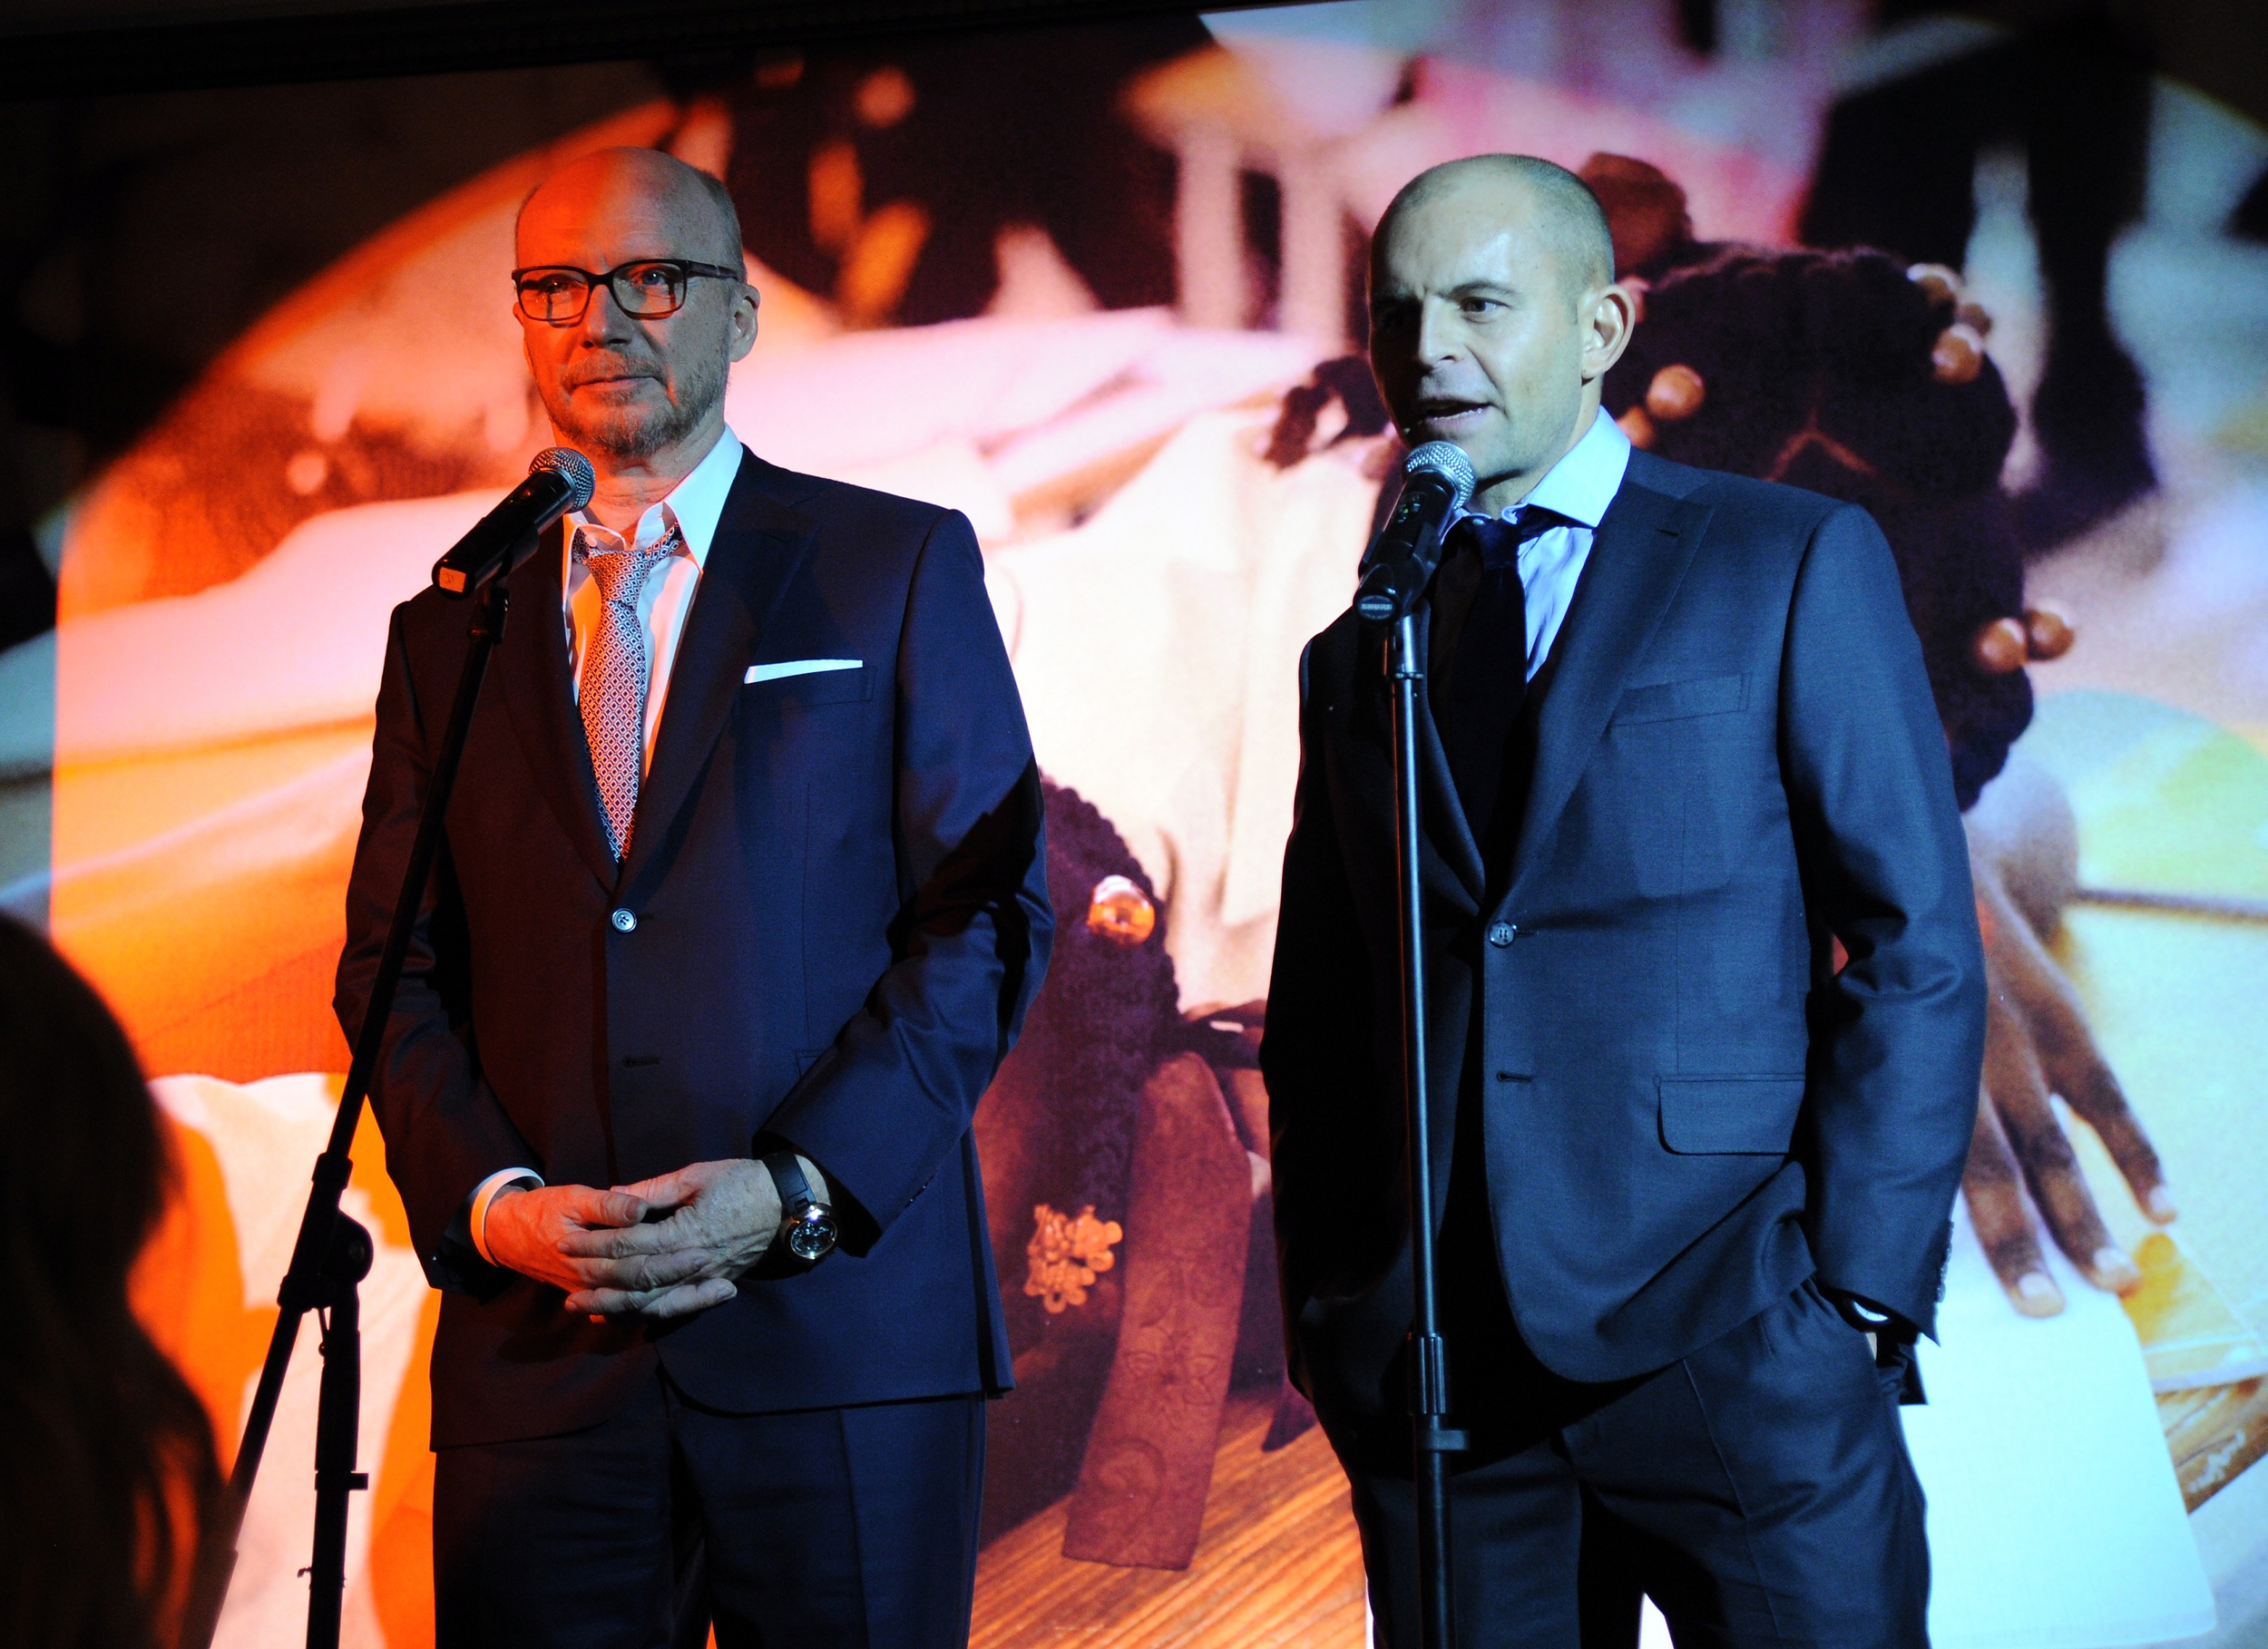 ARTISTS FOR PEACE AND JUSTICE FOUNDER PAUL HAGGIS AND CEO DAVID BELLE